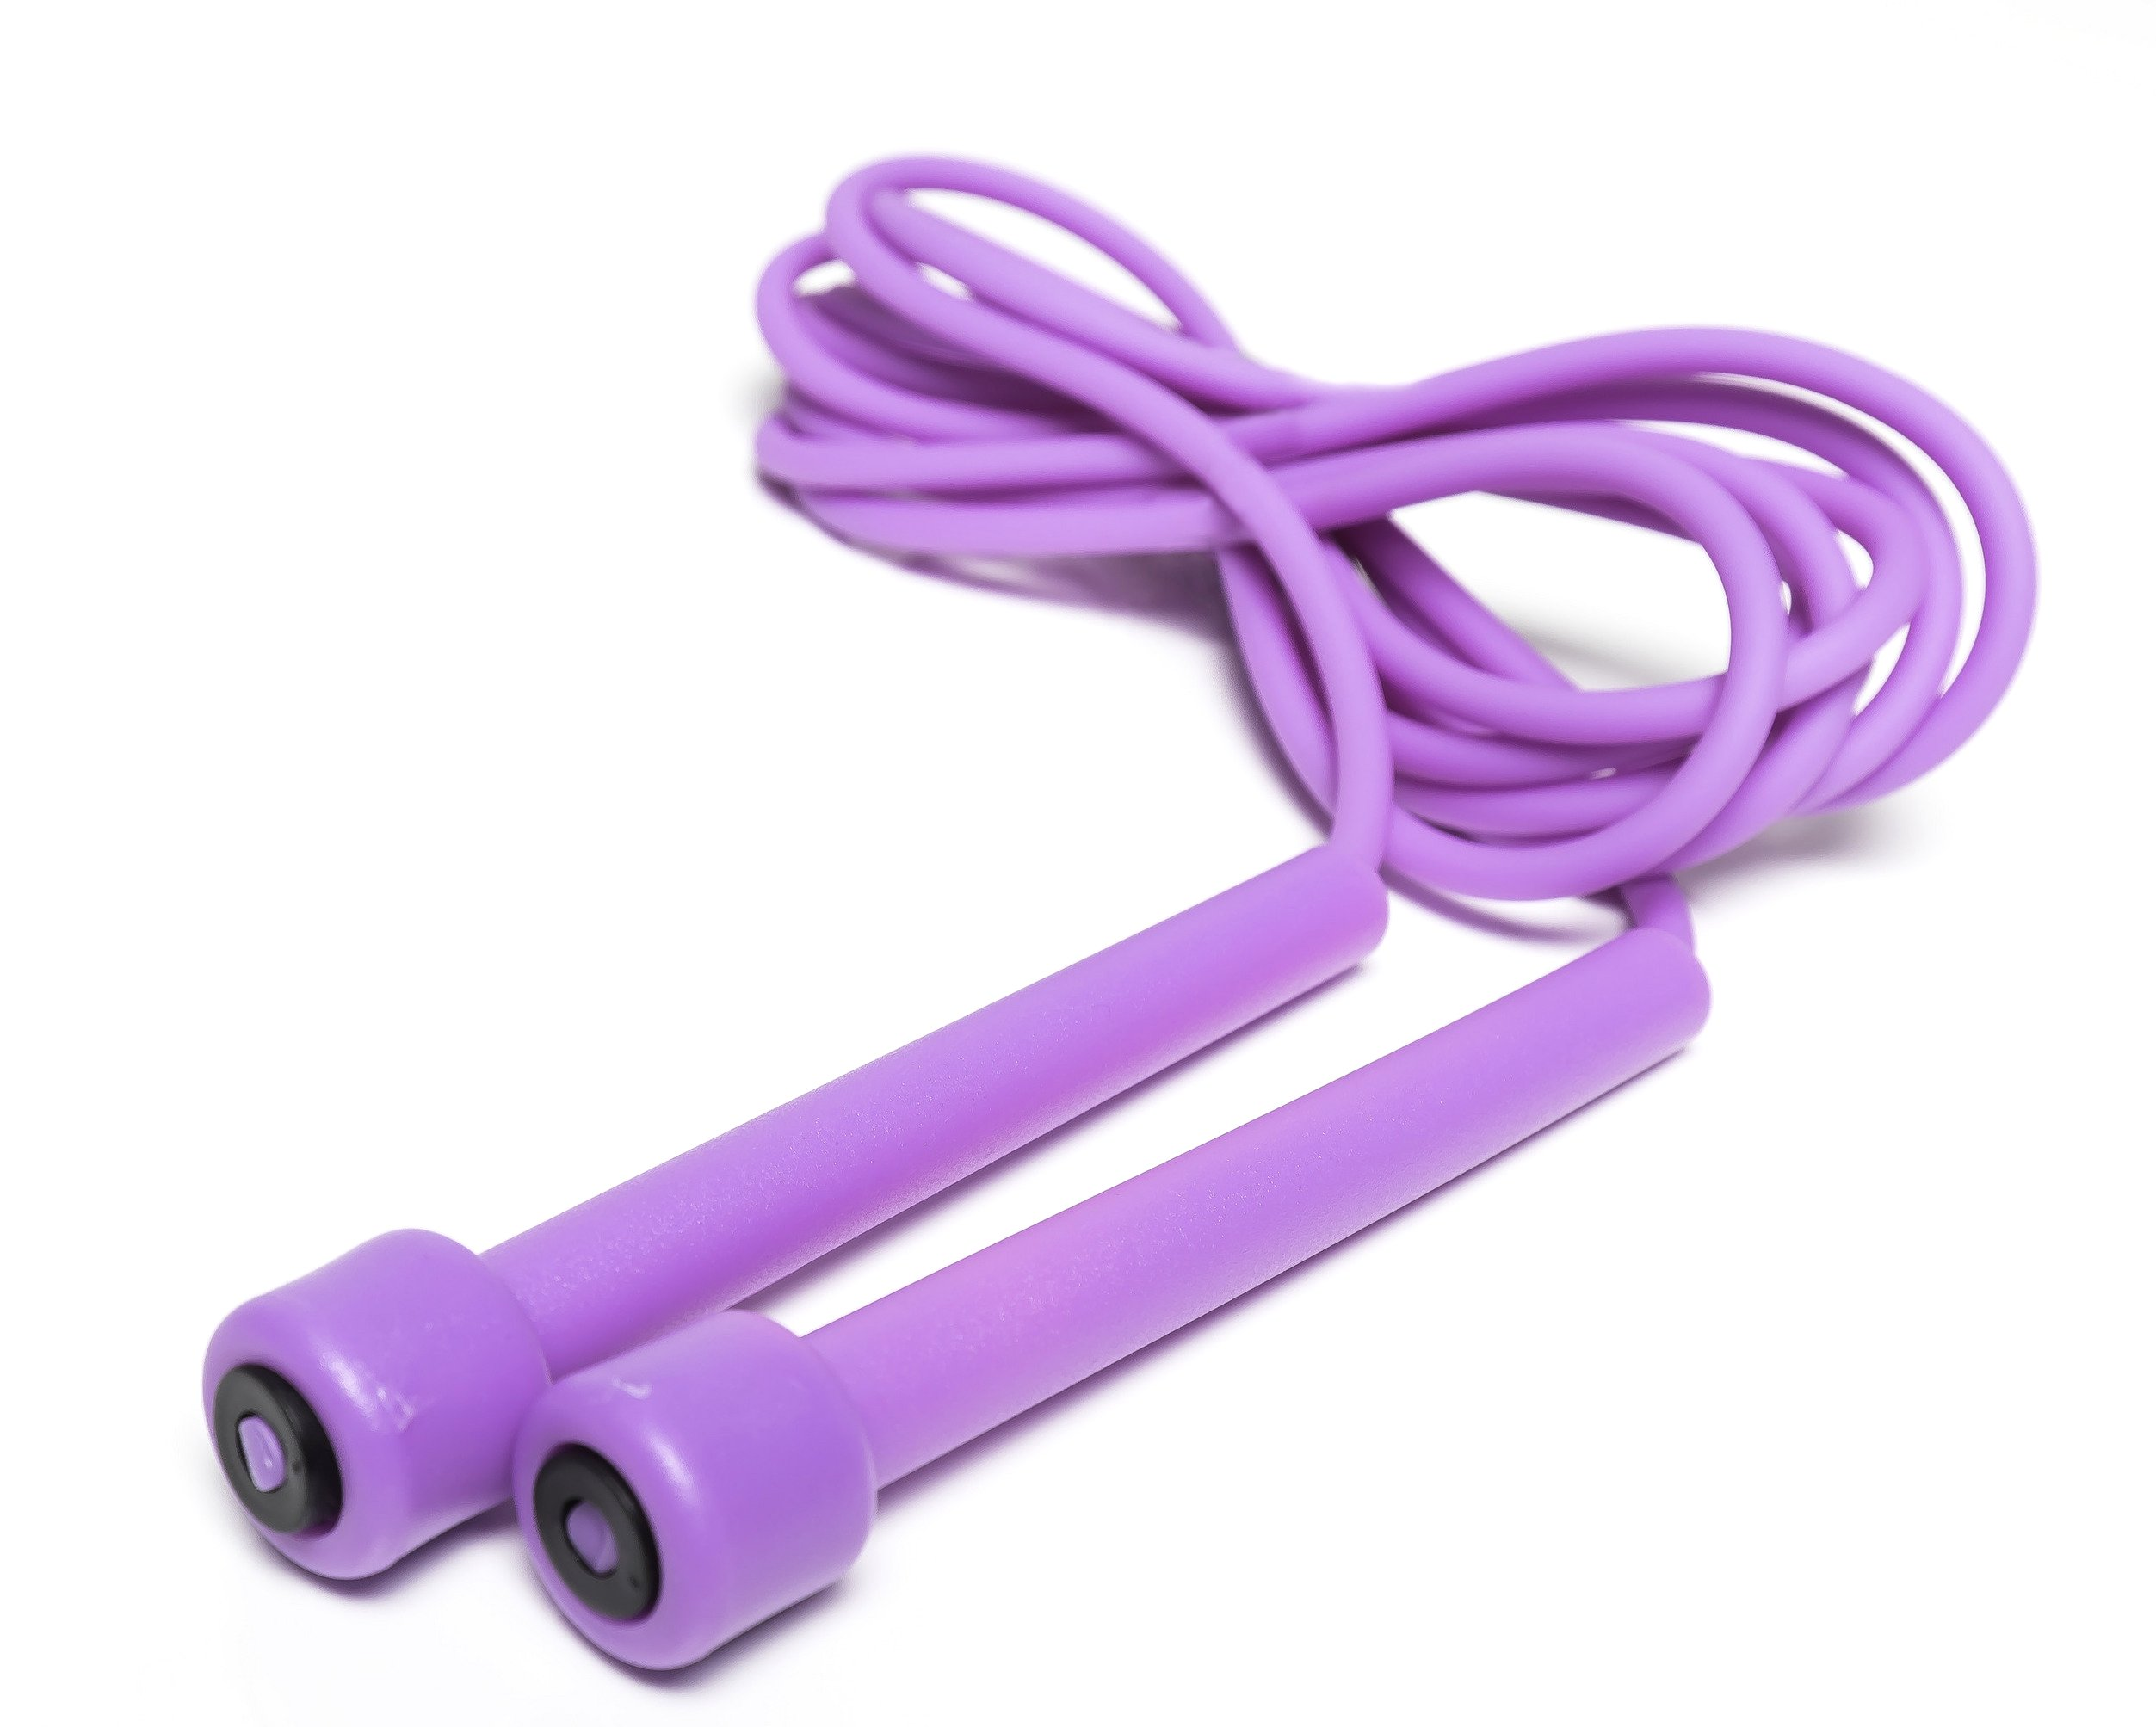 Adjustable Jump Rope for Kids, Men and Women - Best for Fitness Training, Home Workouts, Cardio and Outdoor Activities - Perfect Skipping Rope for All Experience Levels - Makes A Great Gift